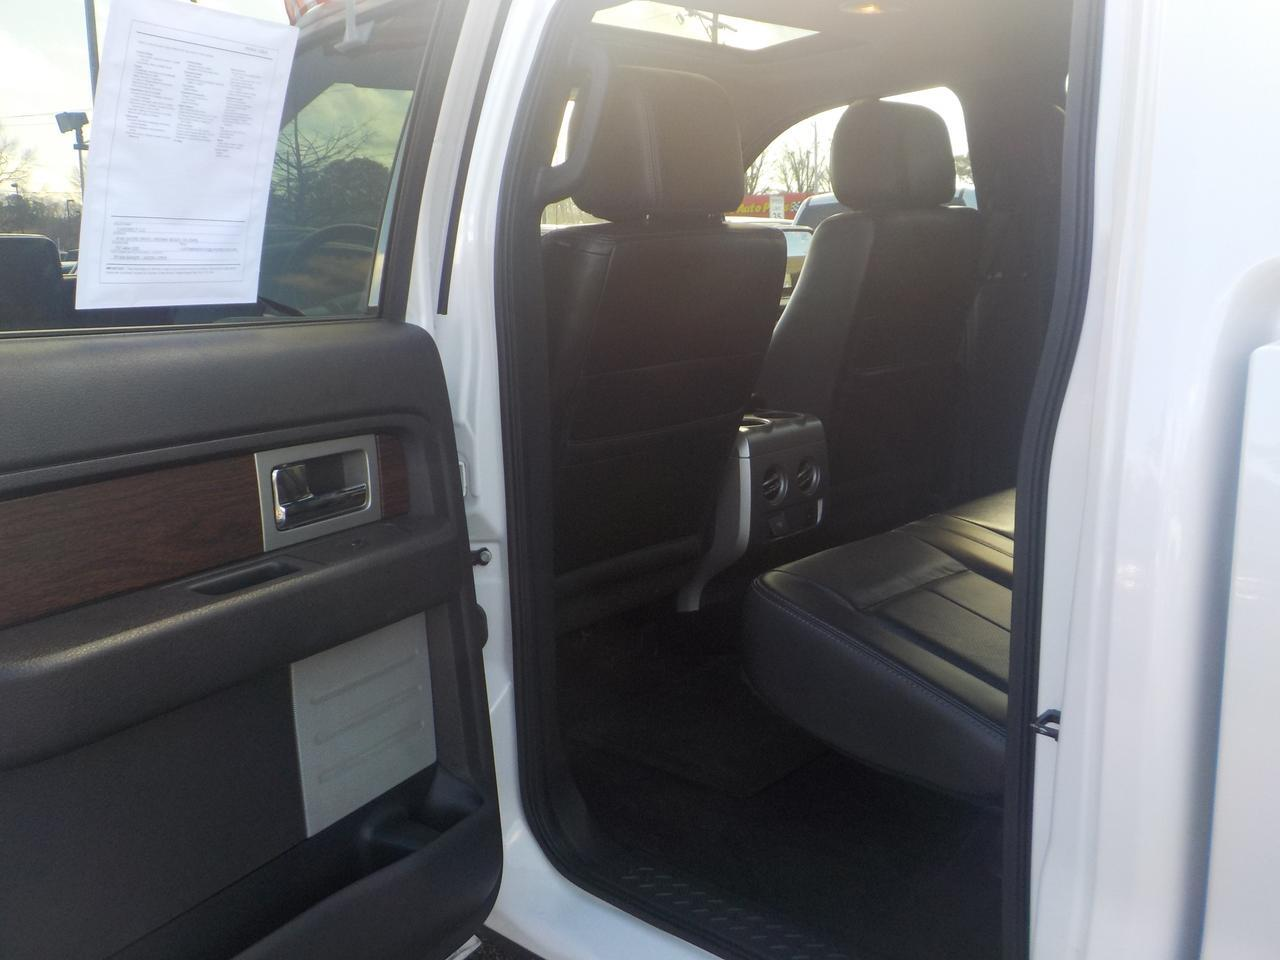 2013 FORD F-150 SUPERCREW LARIAT 4X4, LEATHER HEATED & COOLED SEATS, NAVIGATION, SOFT TONNEAU COVER, REMOTE START! Virginia Beach VA